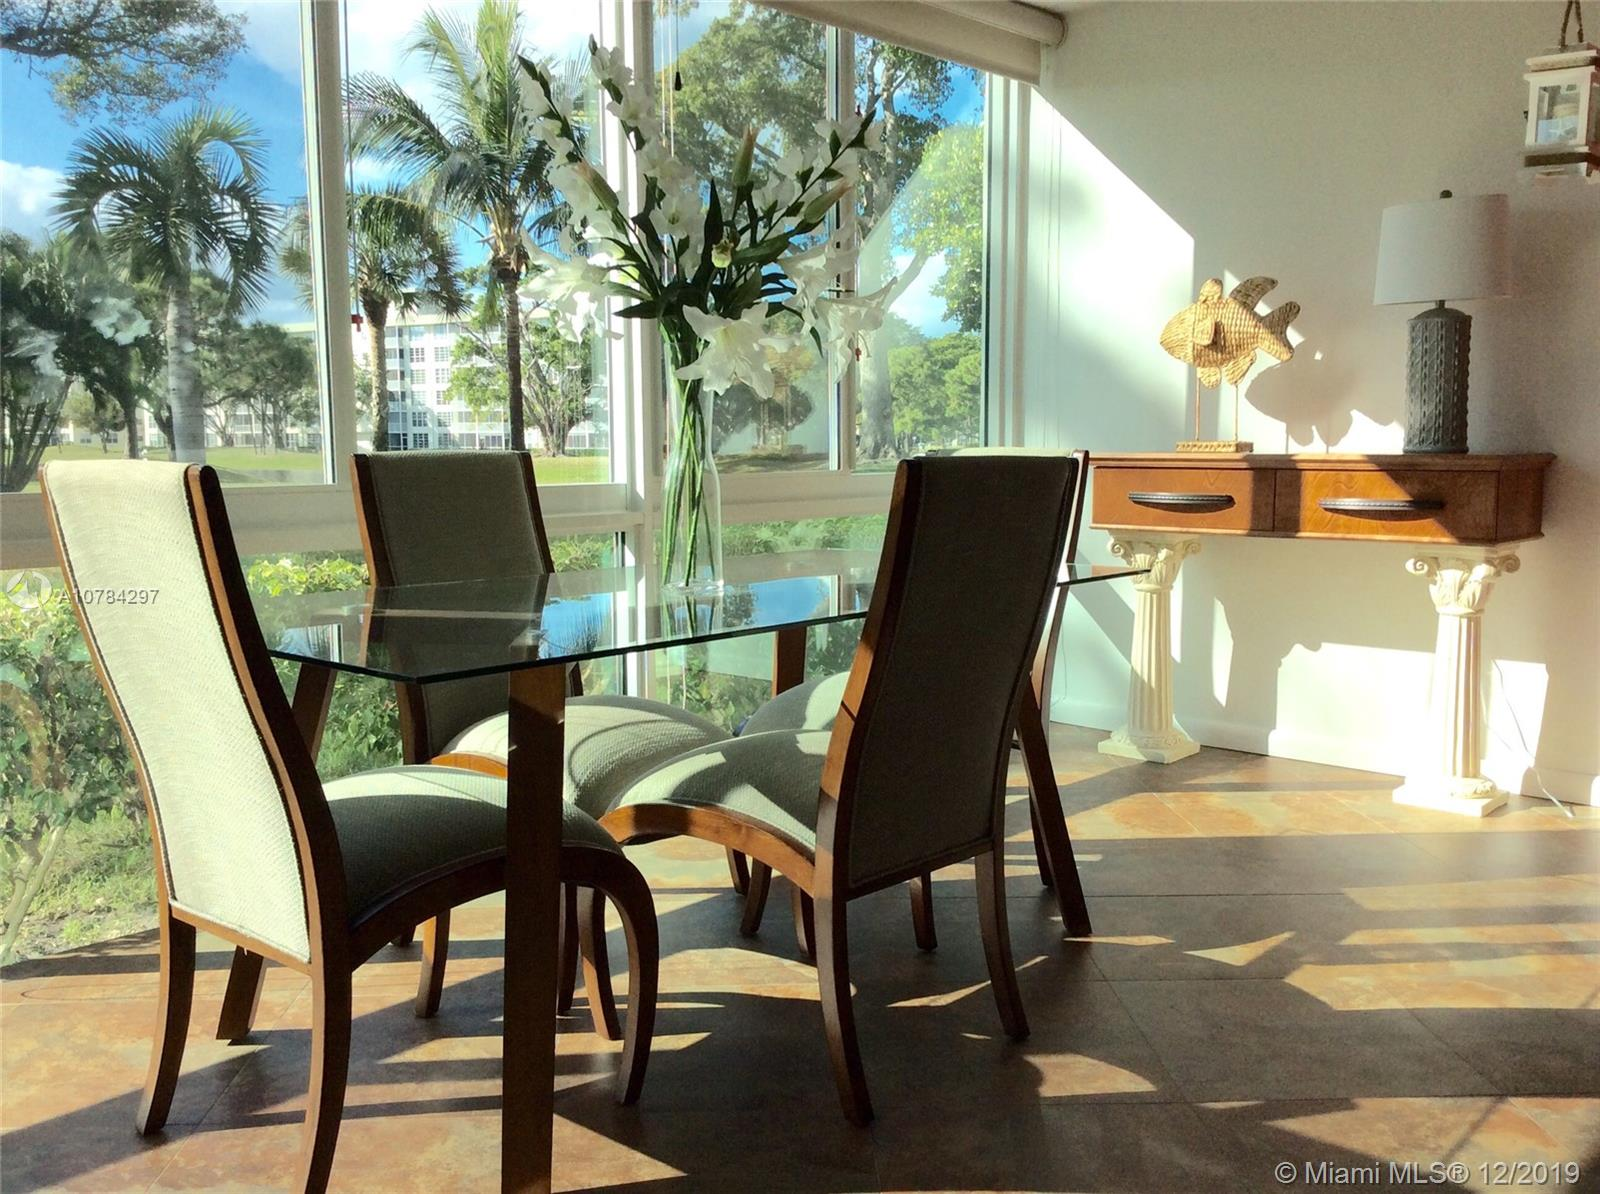 Spectacular, immaculate 3/2.5 2100 square feet corner unit, with no expense spared. This Property features lake view, trees and hills. Huge master bathroom with seperate vanities. Master bedroom has sitting area with floor to ceiling windows. No carpet. Granite countertops in kitchen, stainless steel appliances, high impact windows, remodeled bathrooms. Just steps to the pool. Association requires 20% down.